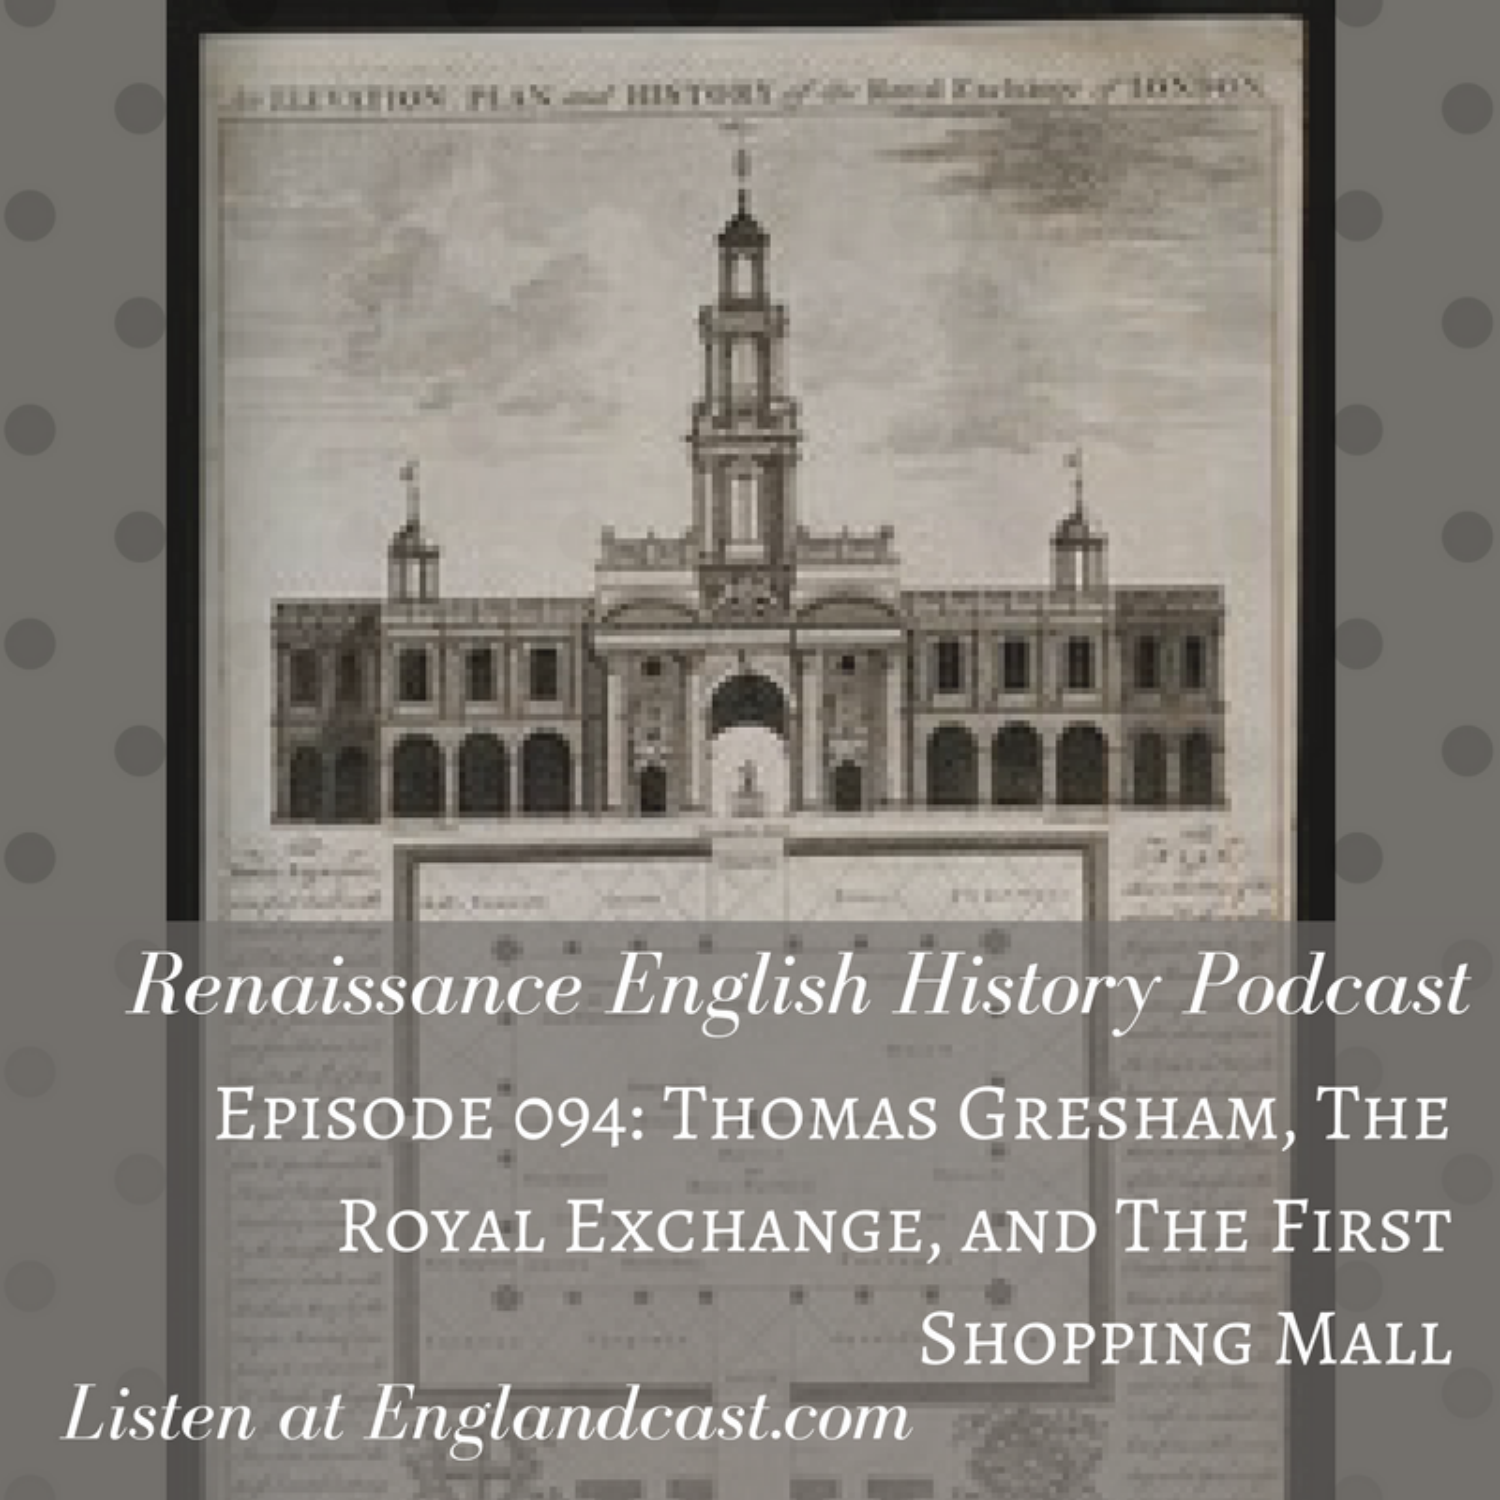 Episode 094: Thomas Gresham, and the Royal Exchange: England's First Shopping Mall